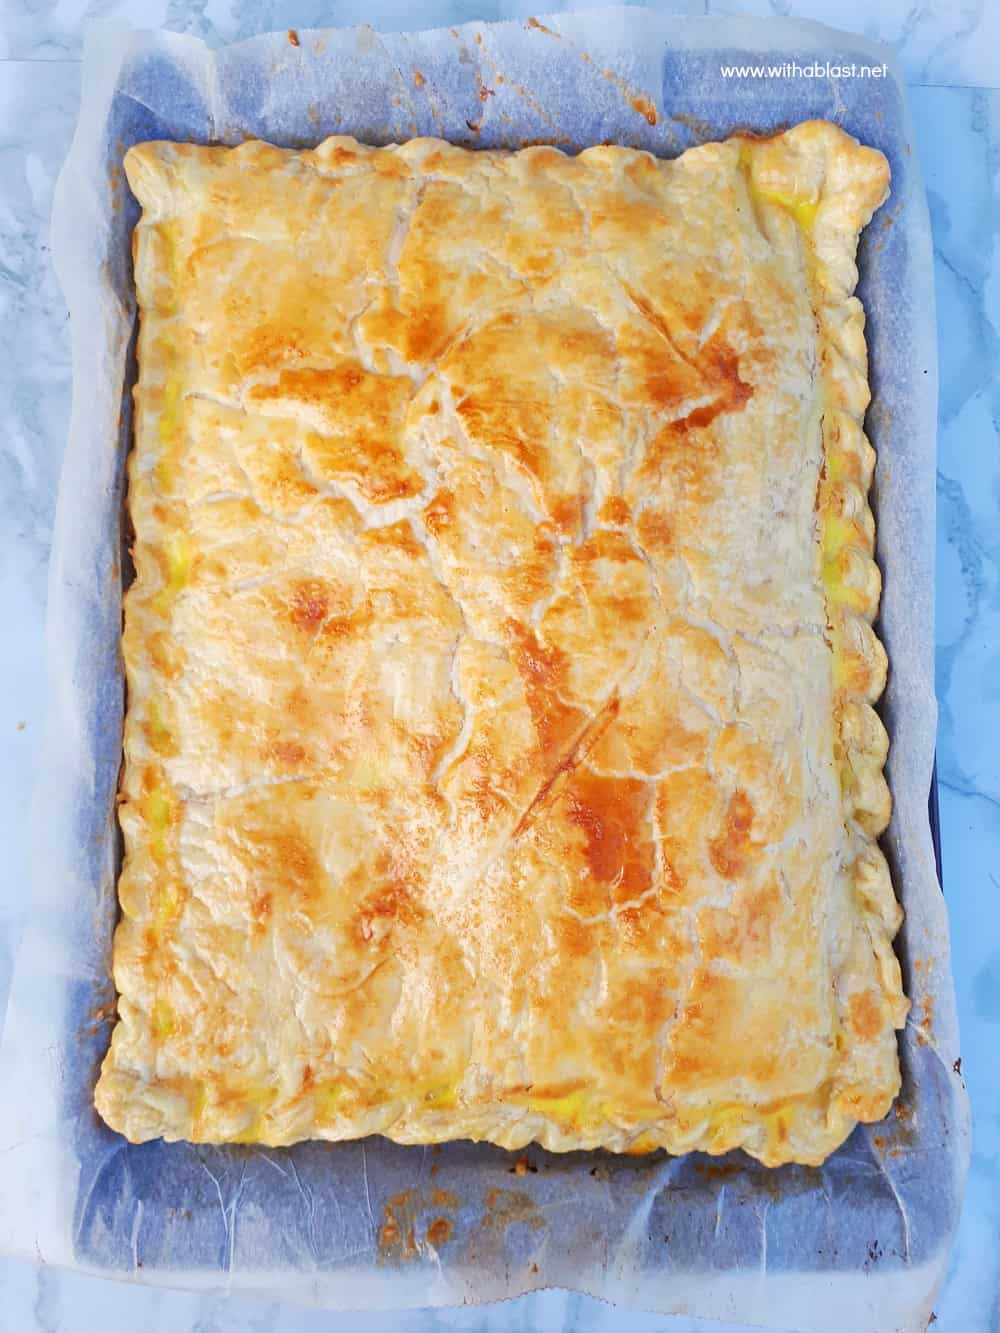 Ham and Cheese Pie is so quick and easy to make using a sheet pan and you can easily fit two pans into your oven - serve as a snack, breakfast or light dinner